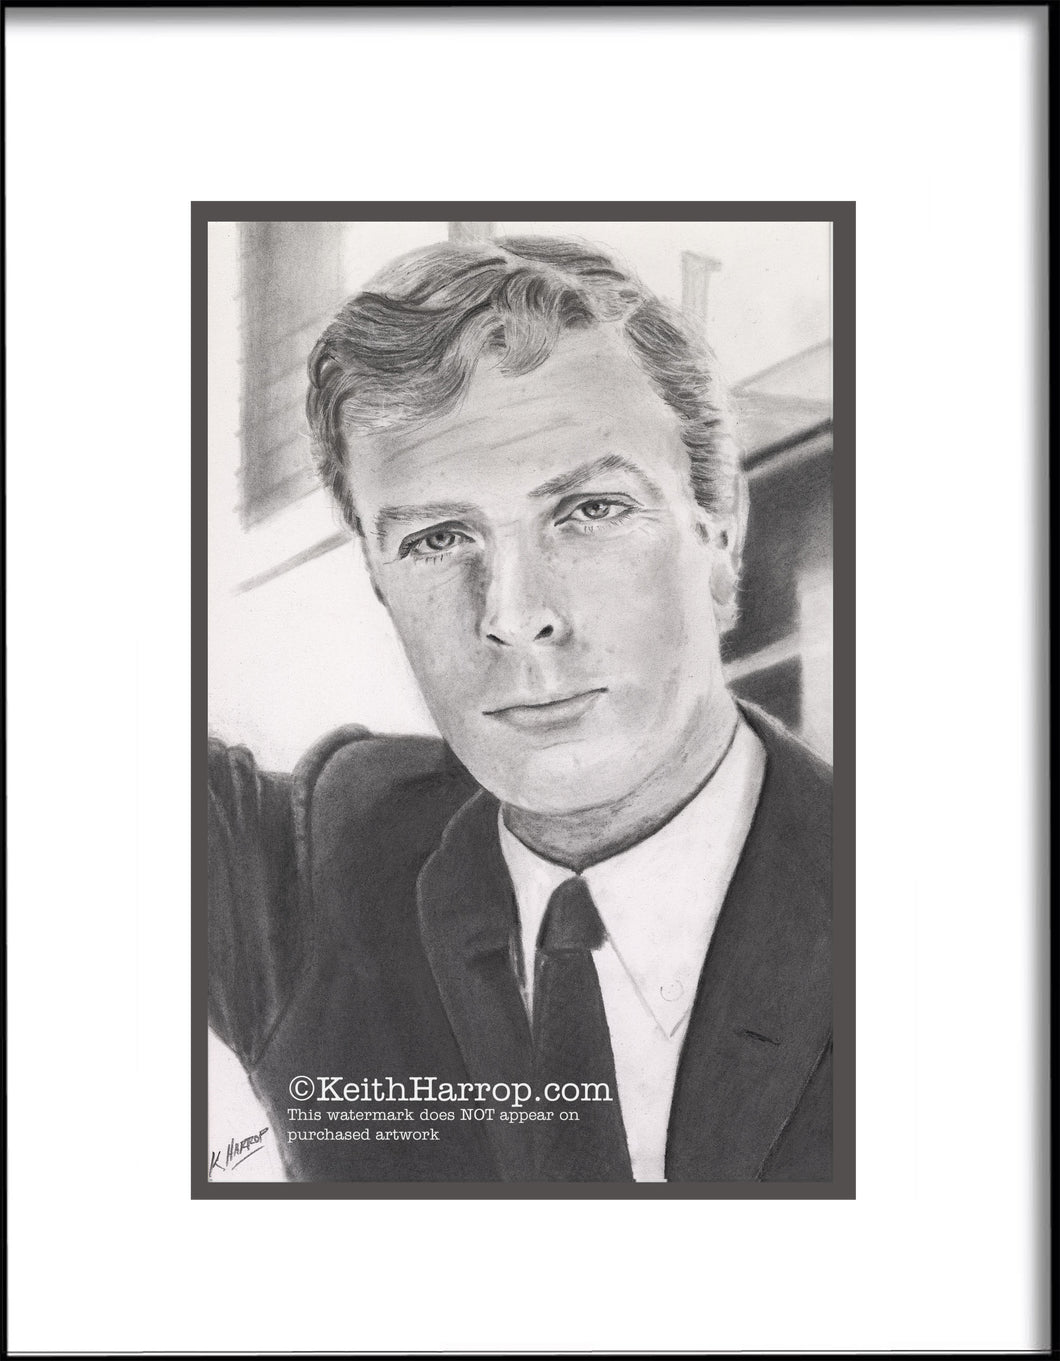 A Young Michael Caine - Pencil illustration